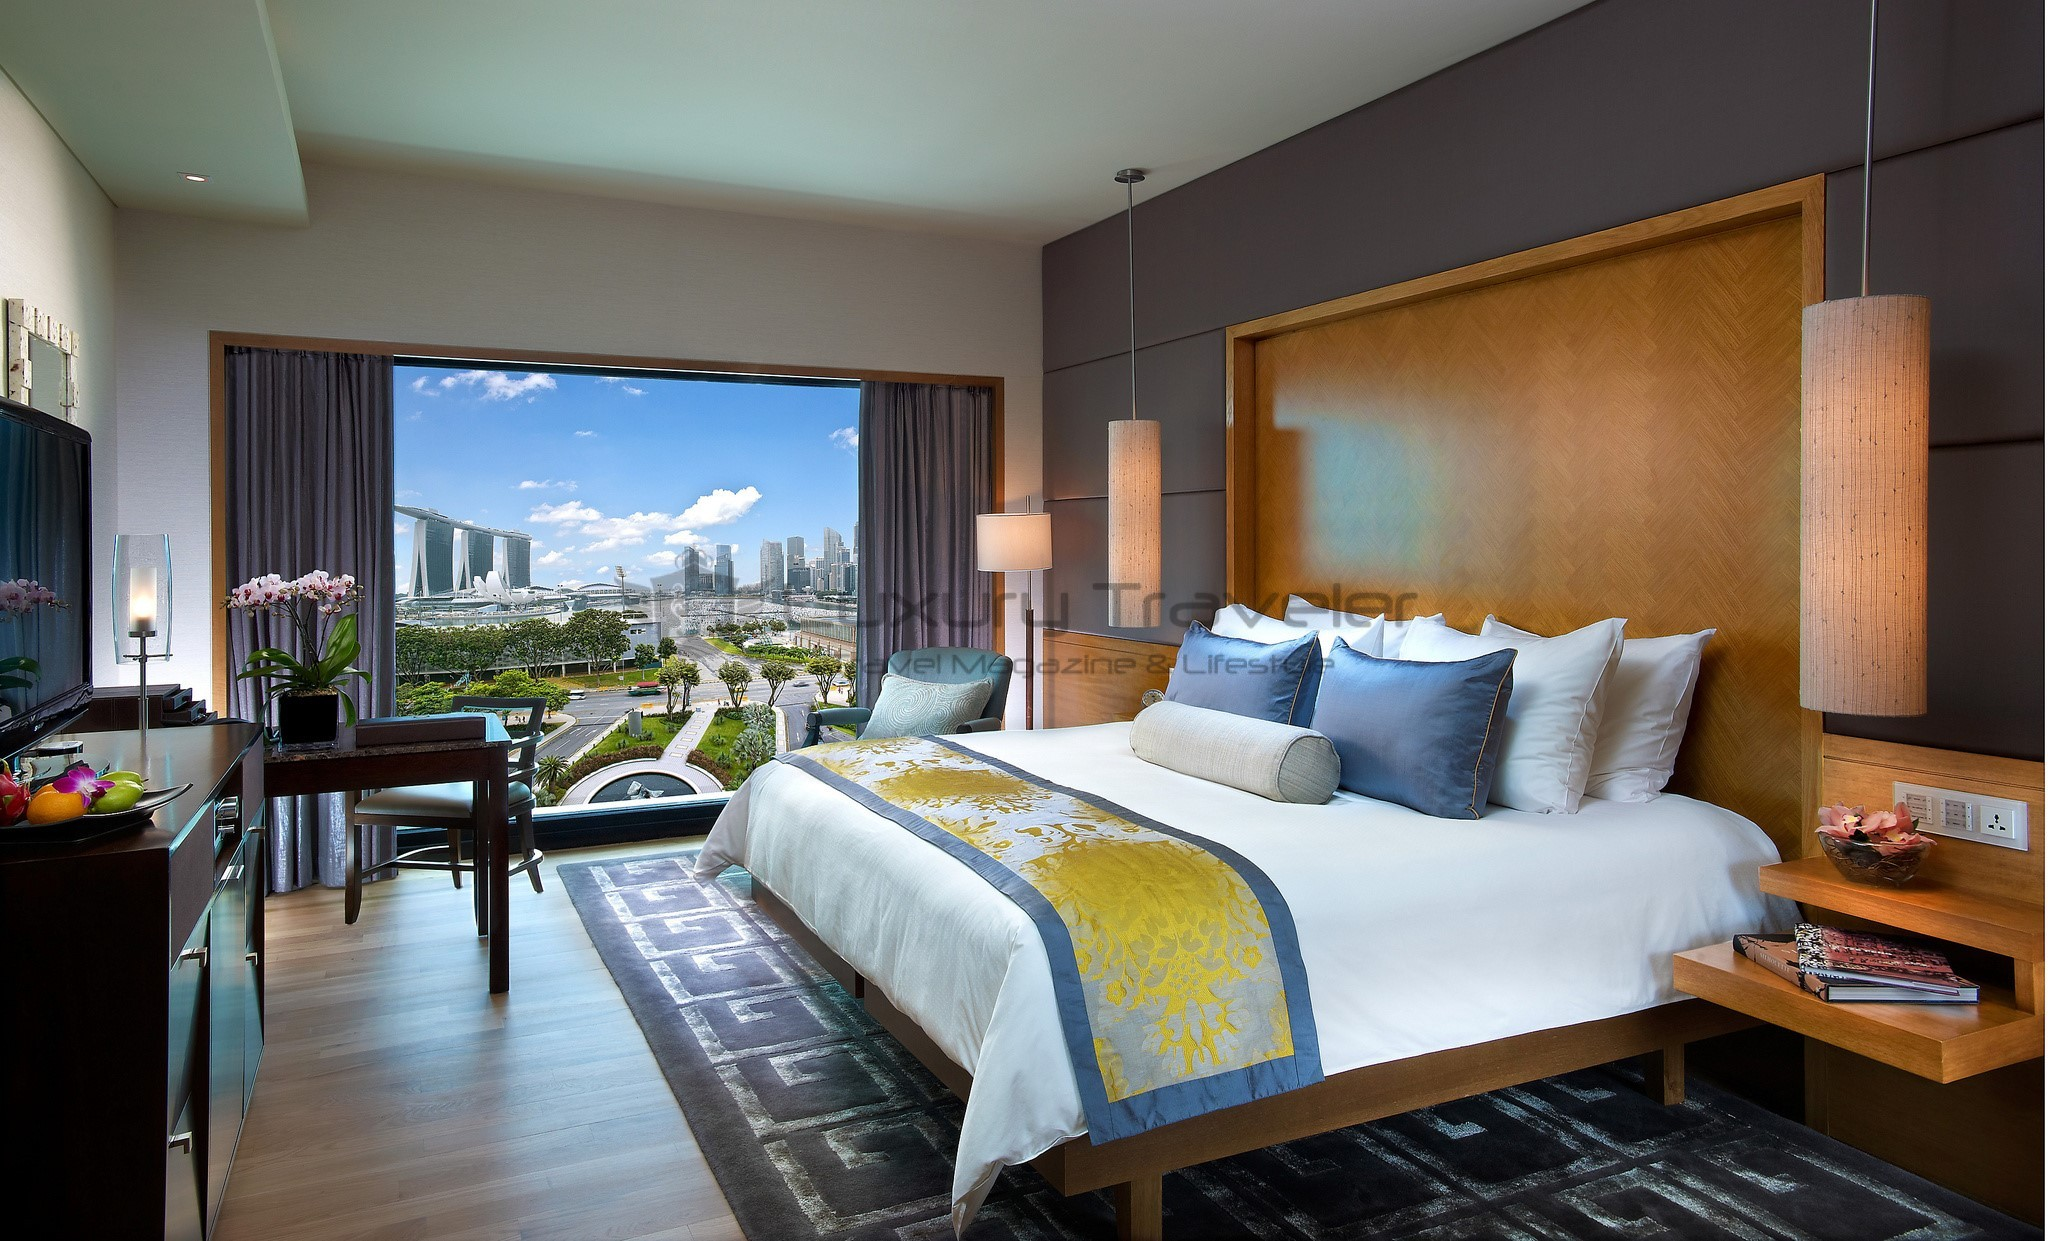 Mandarin oriental singapore luxury 5 star hotel luxury for Hotel luxury